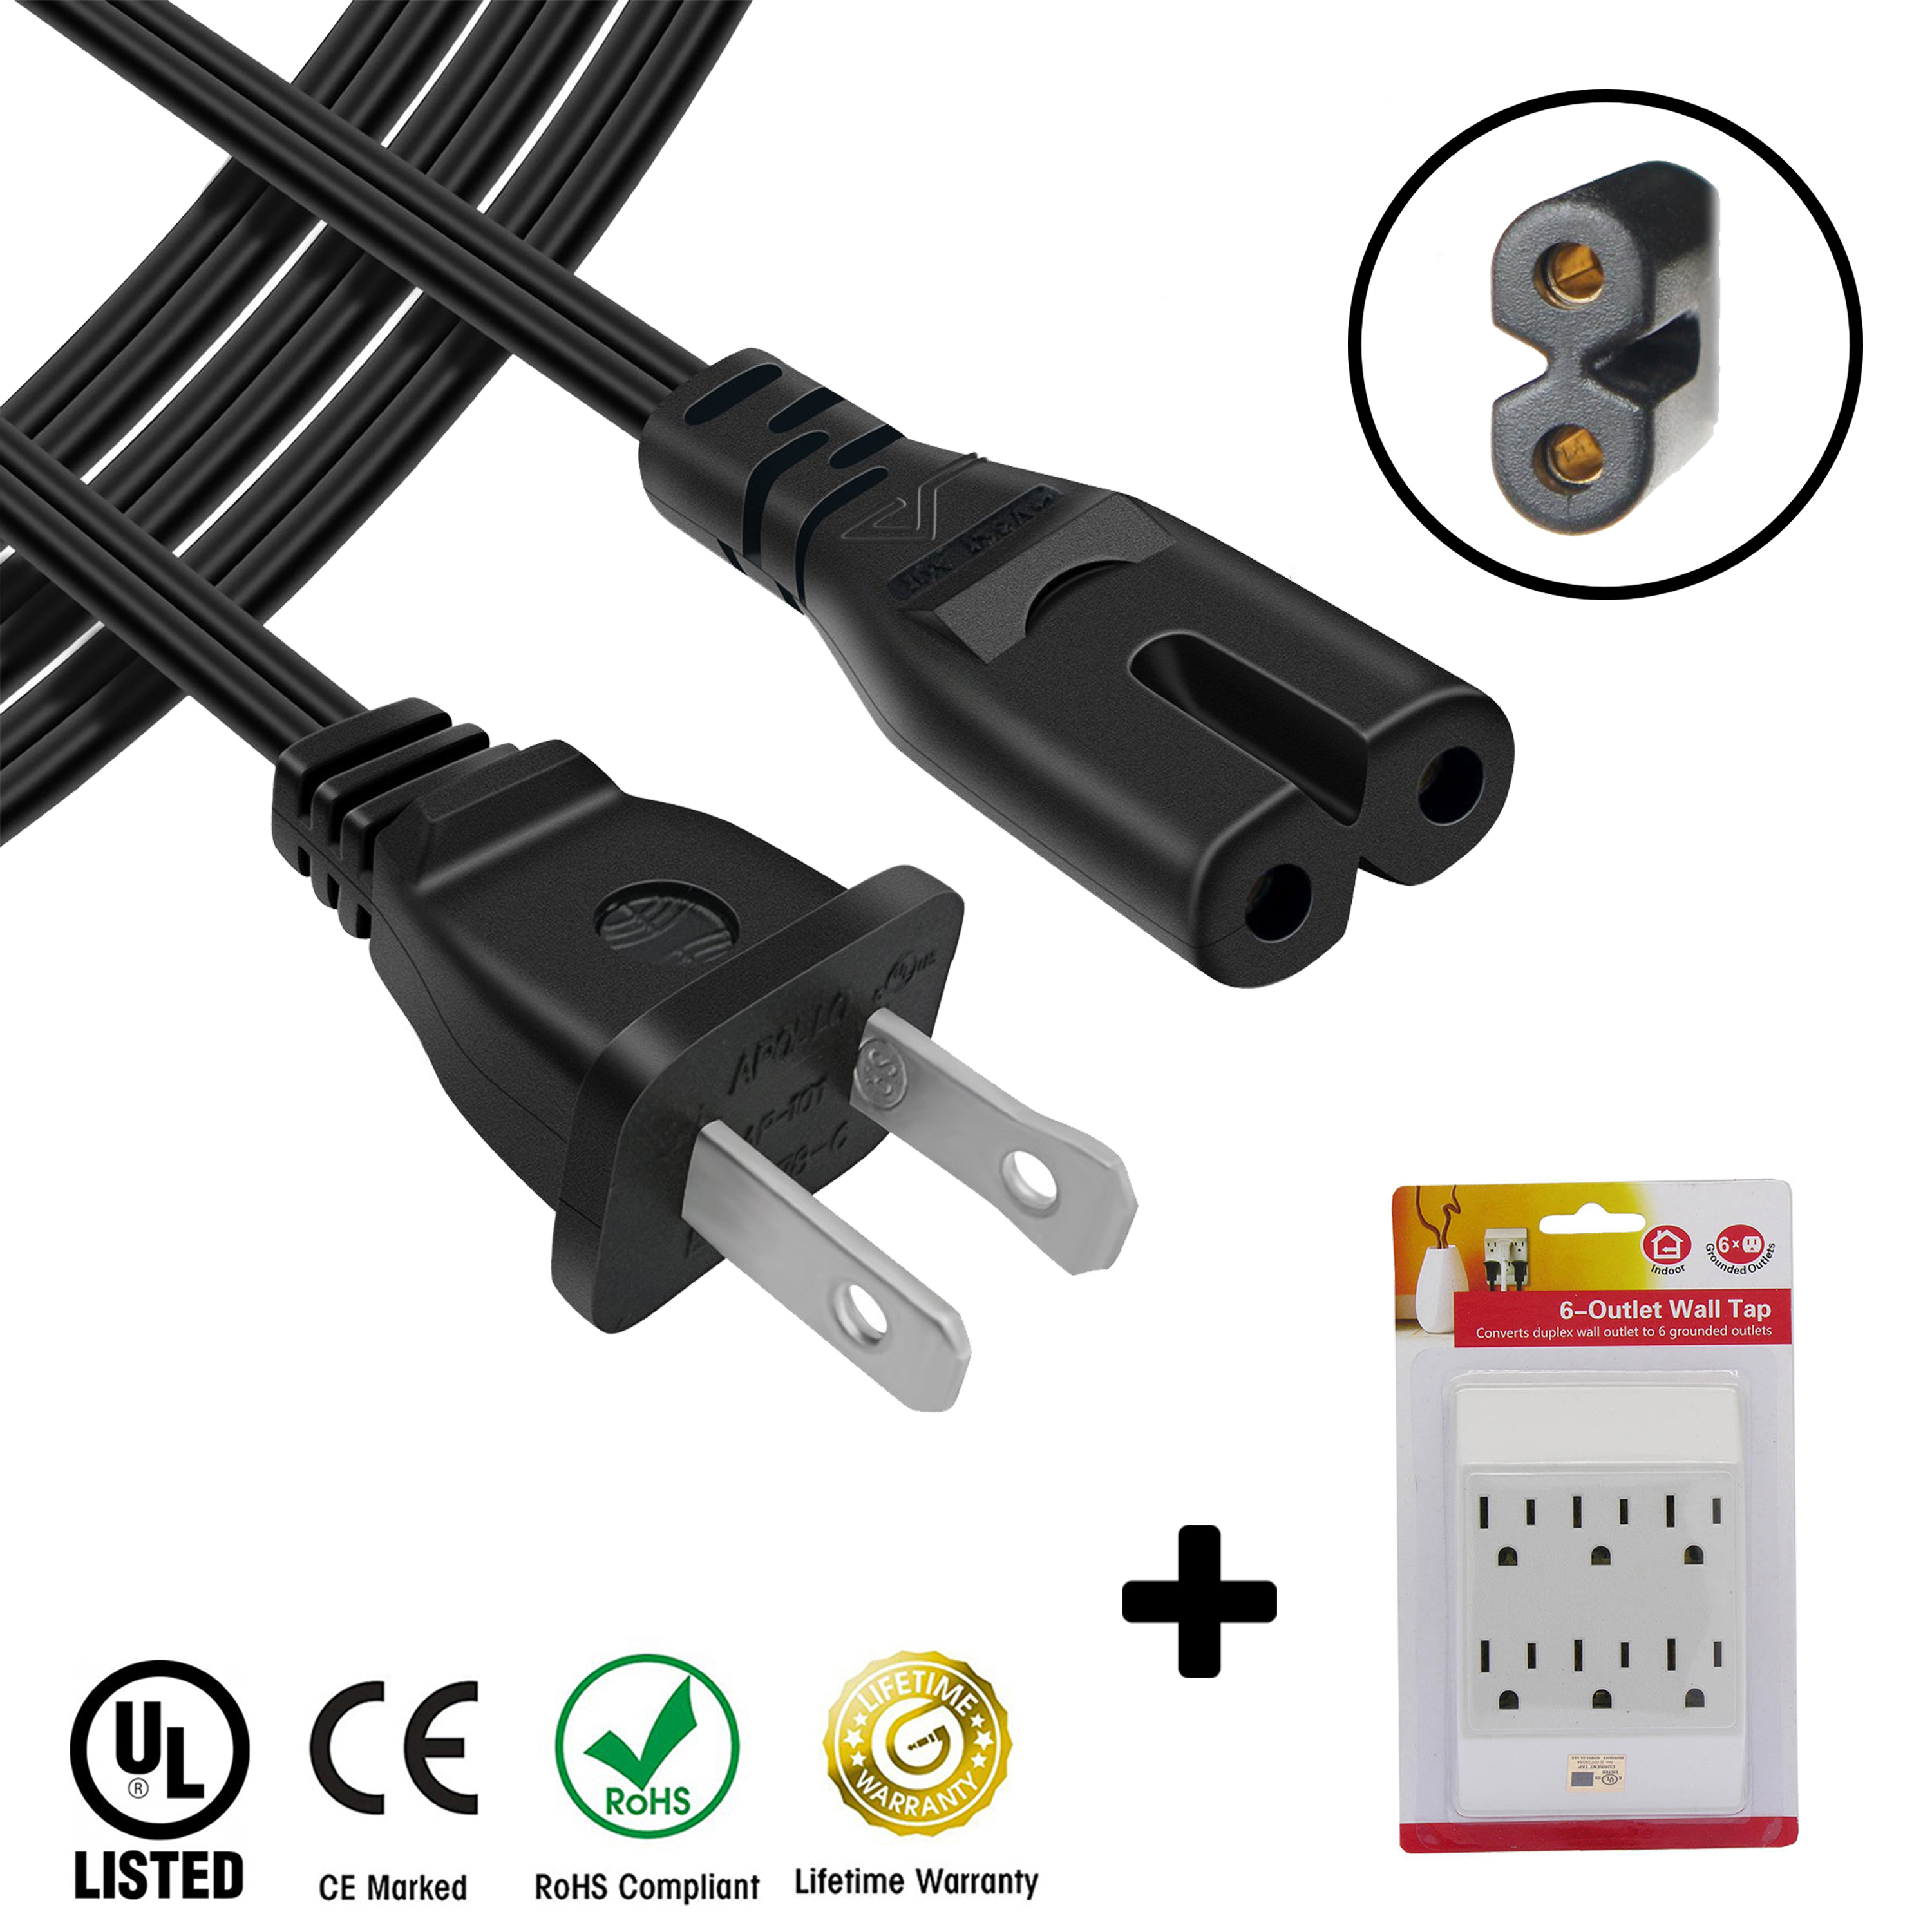 AC Power Cord Cable compatible for Samsung TV UN39FH5000F PLUS 6 Outlet Wall Tap - 1 ft